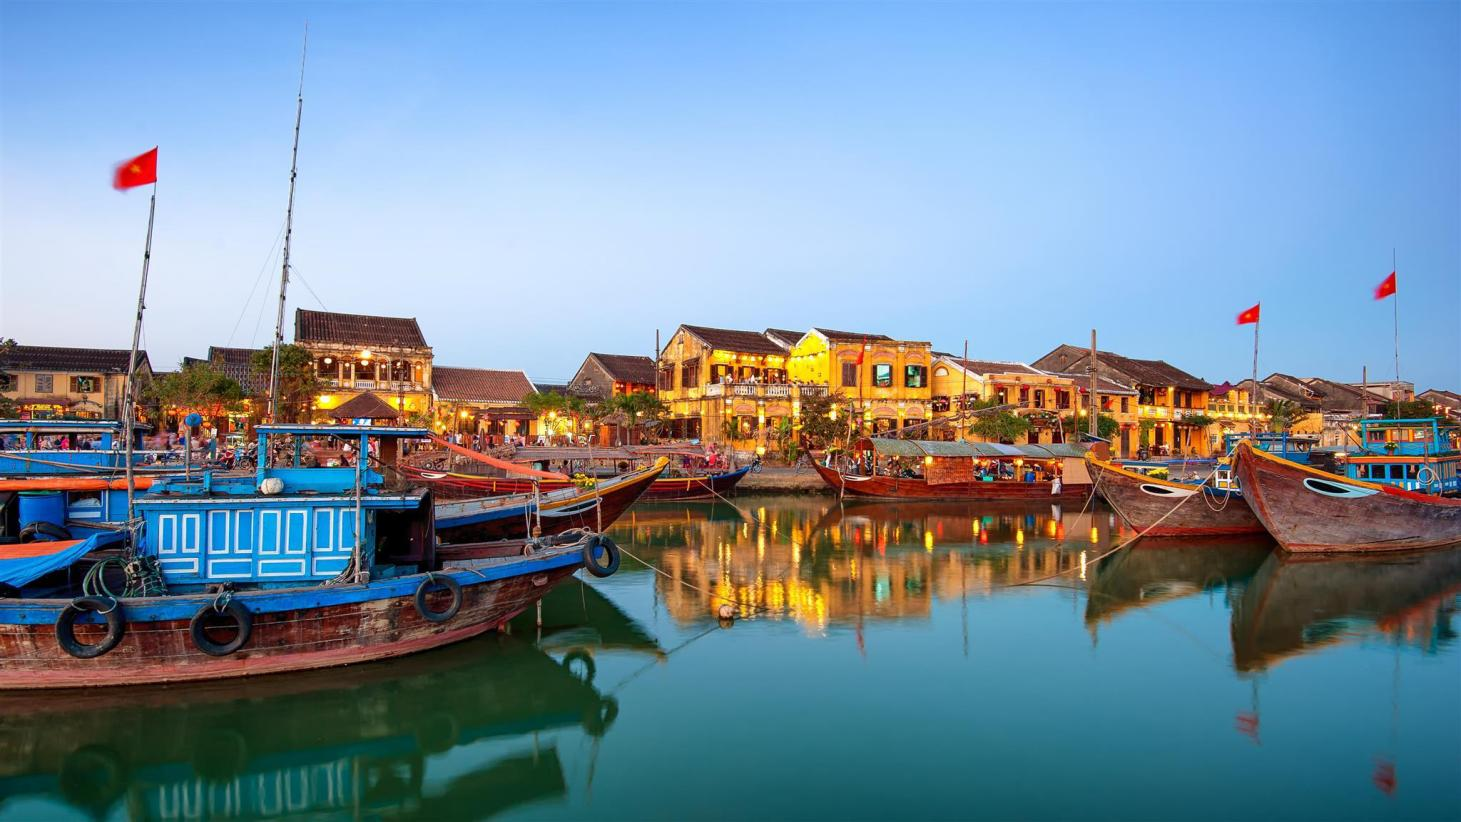 10 Best Hoi An Hotels: HD Photos + Reviews of Hotels in Hoi